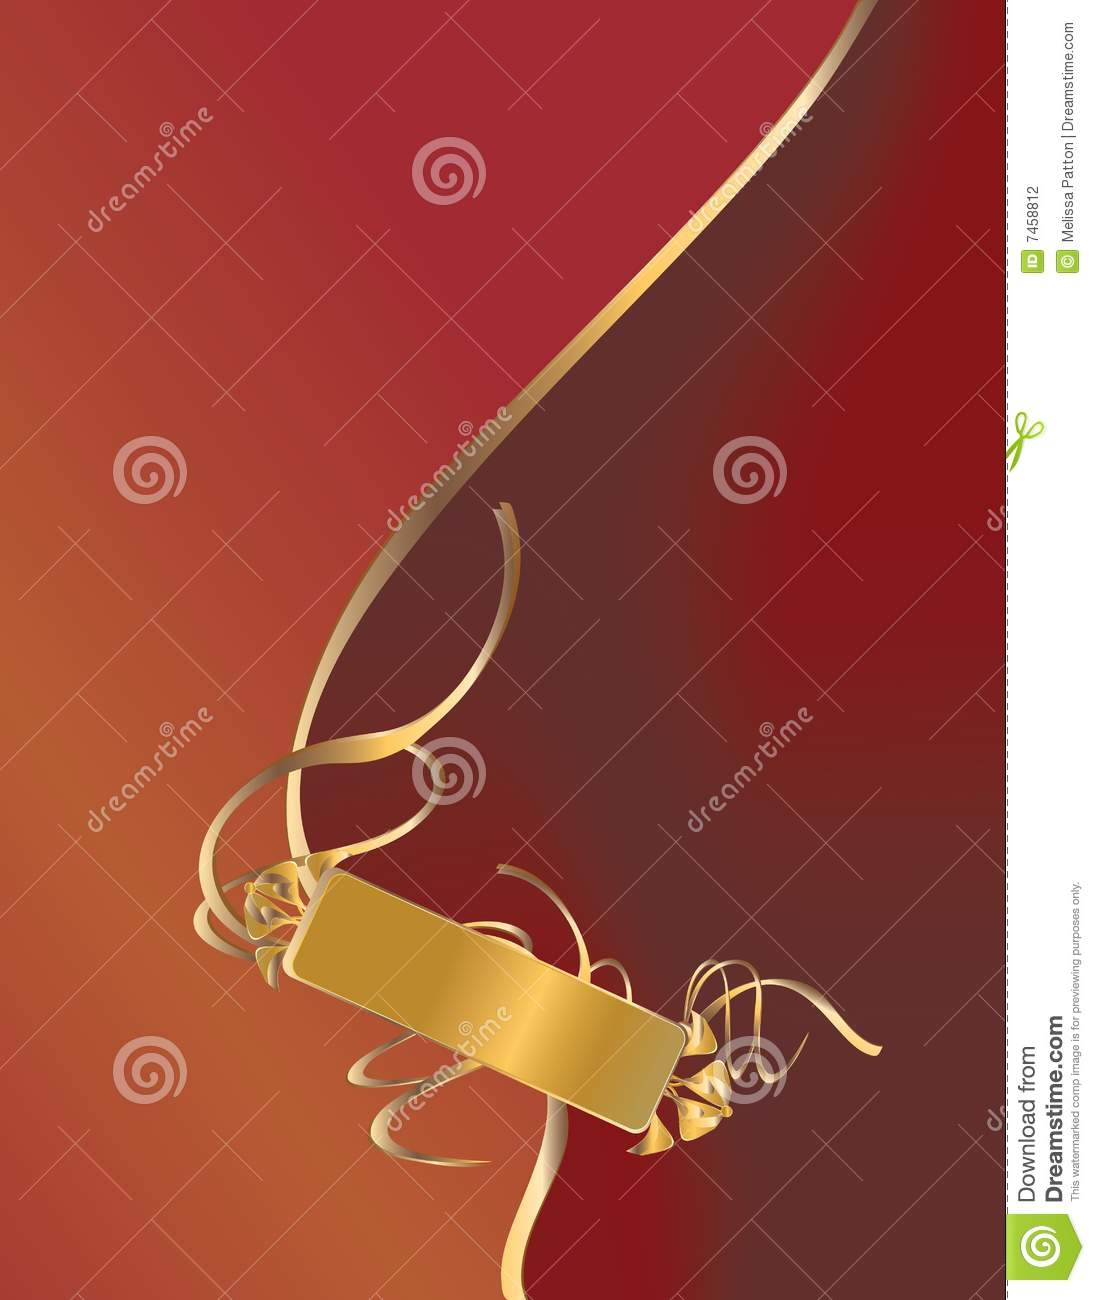 I tag background image - Background Gold Red Ribbon Tag